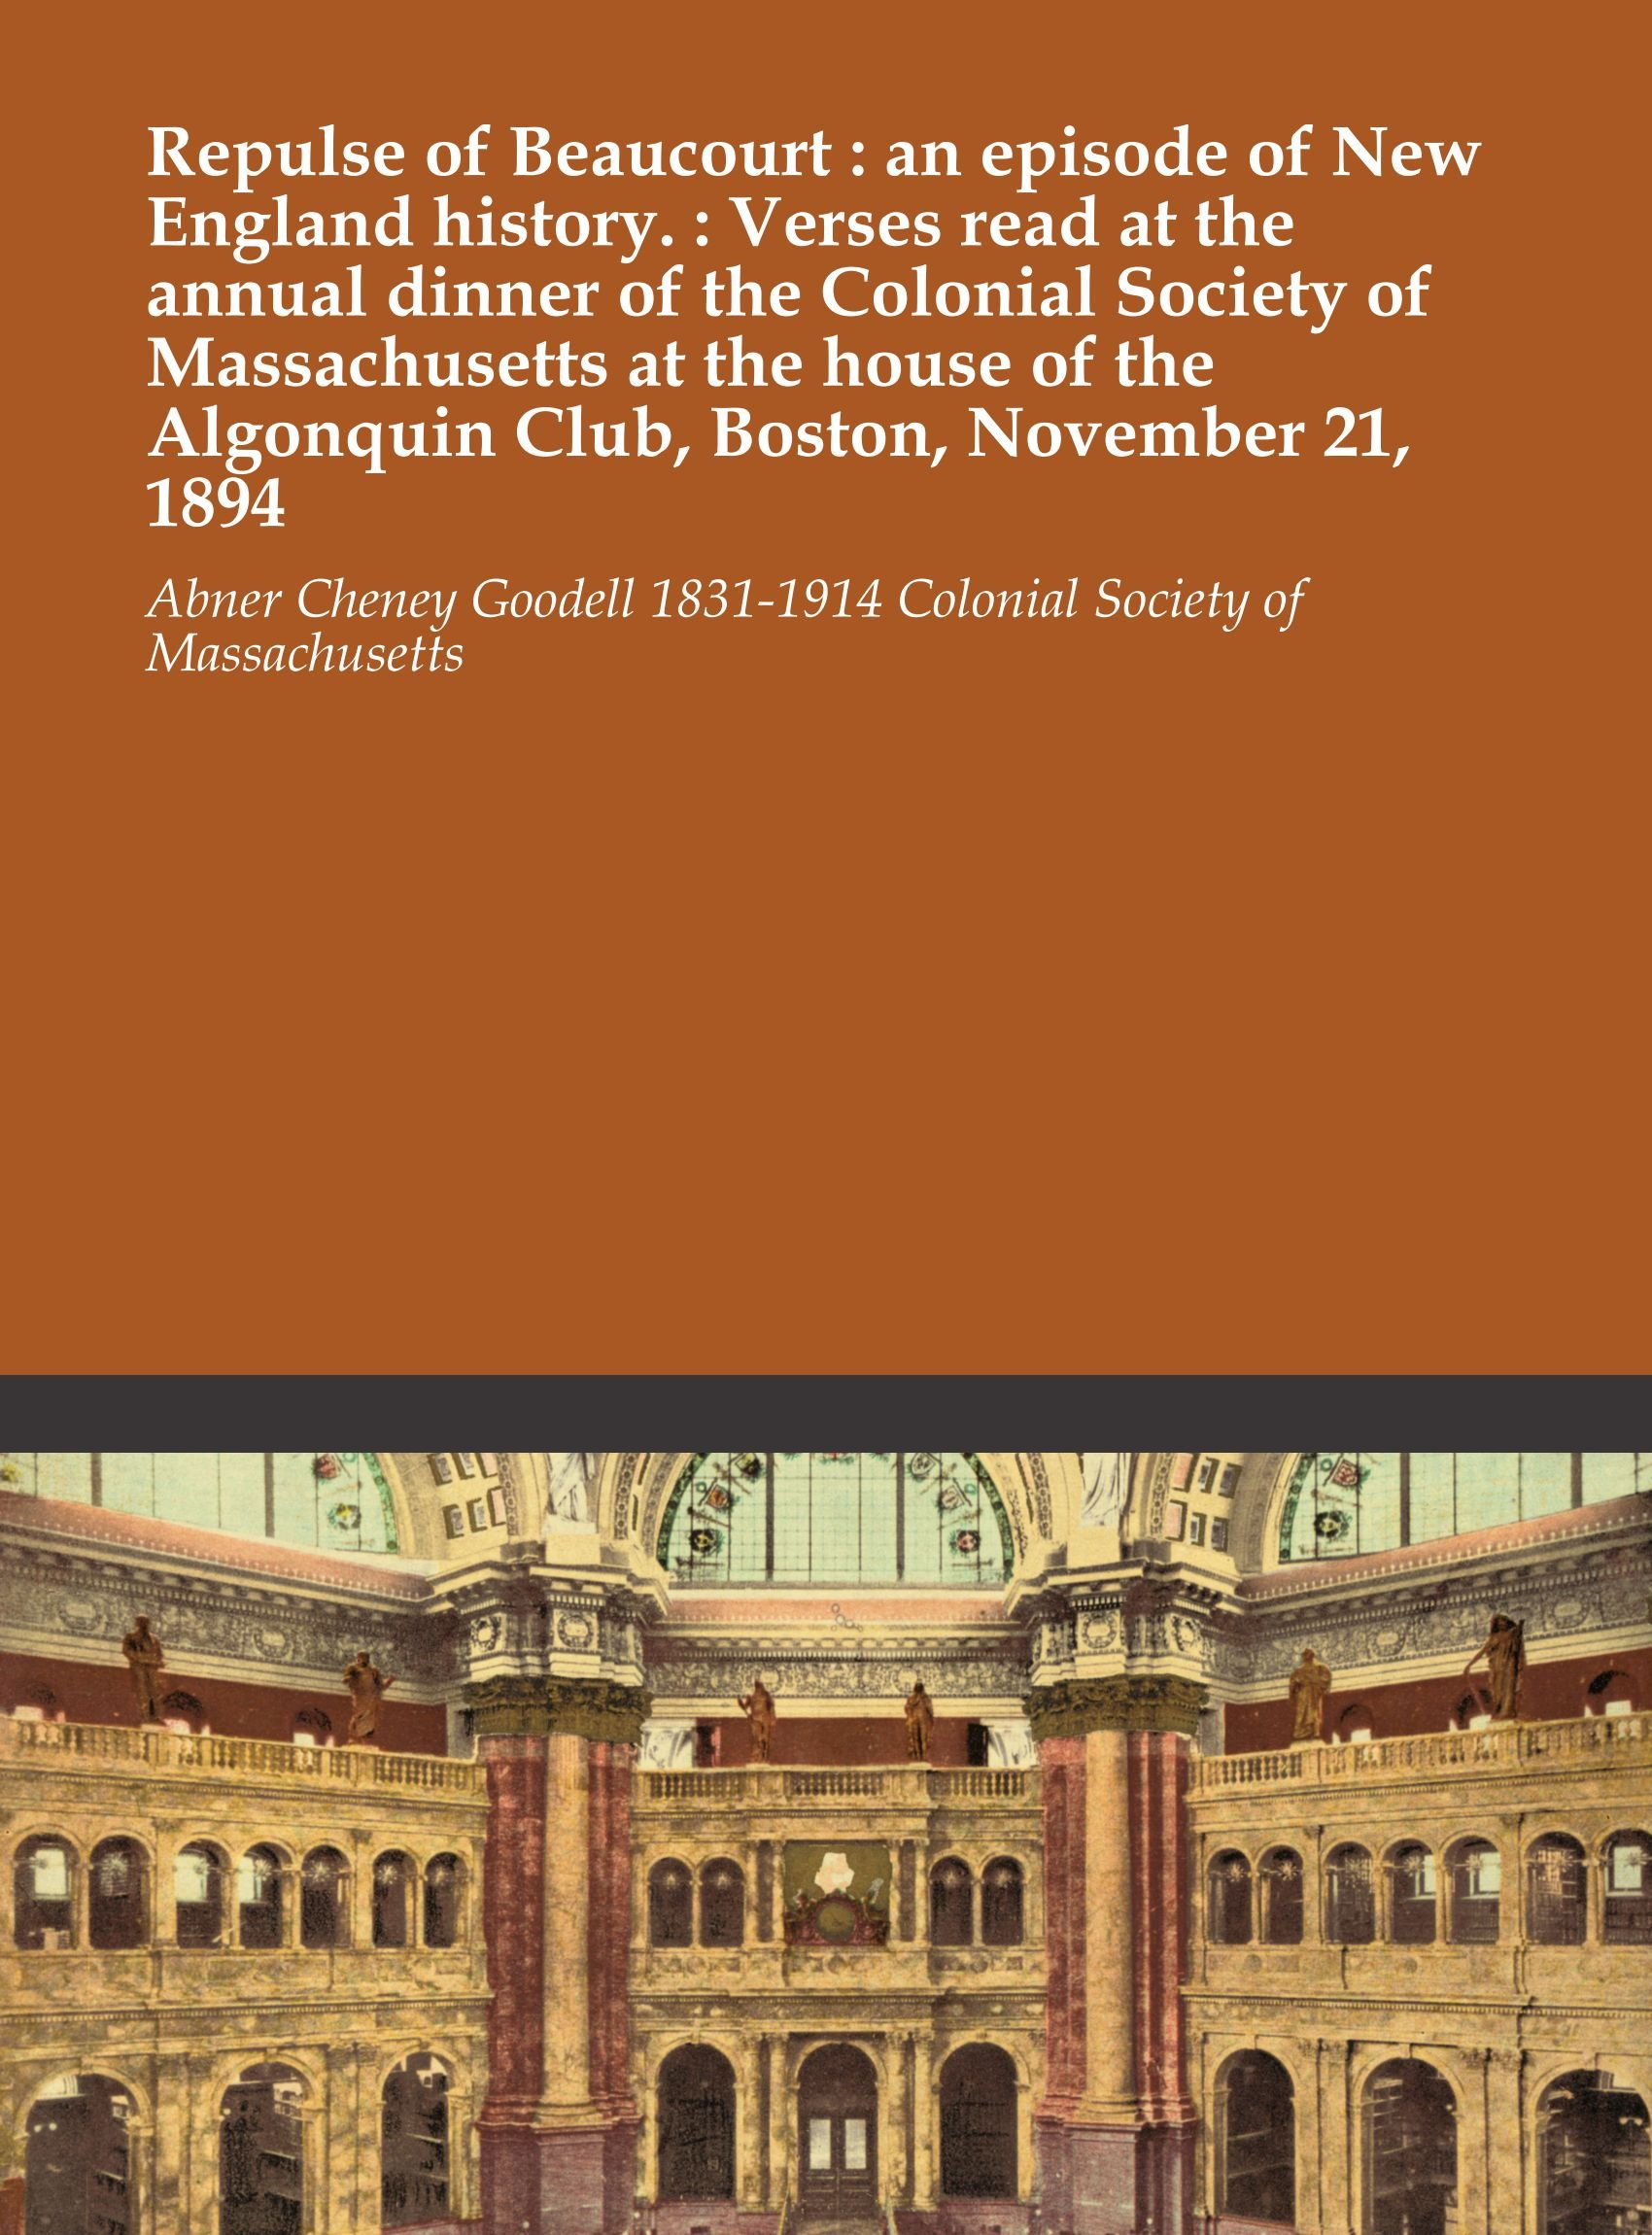 Download Repulse of Beaucourt : an episode of New England history. : Verses read at the annual dinner of the Colonial Society of Massachusetts at the house of the Algonquin Club, Boston, November 21, 1894 PDF